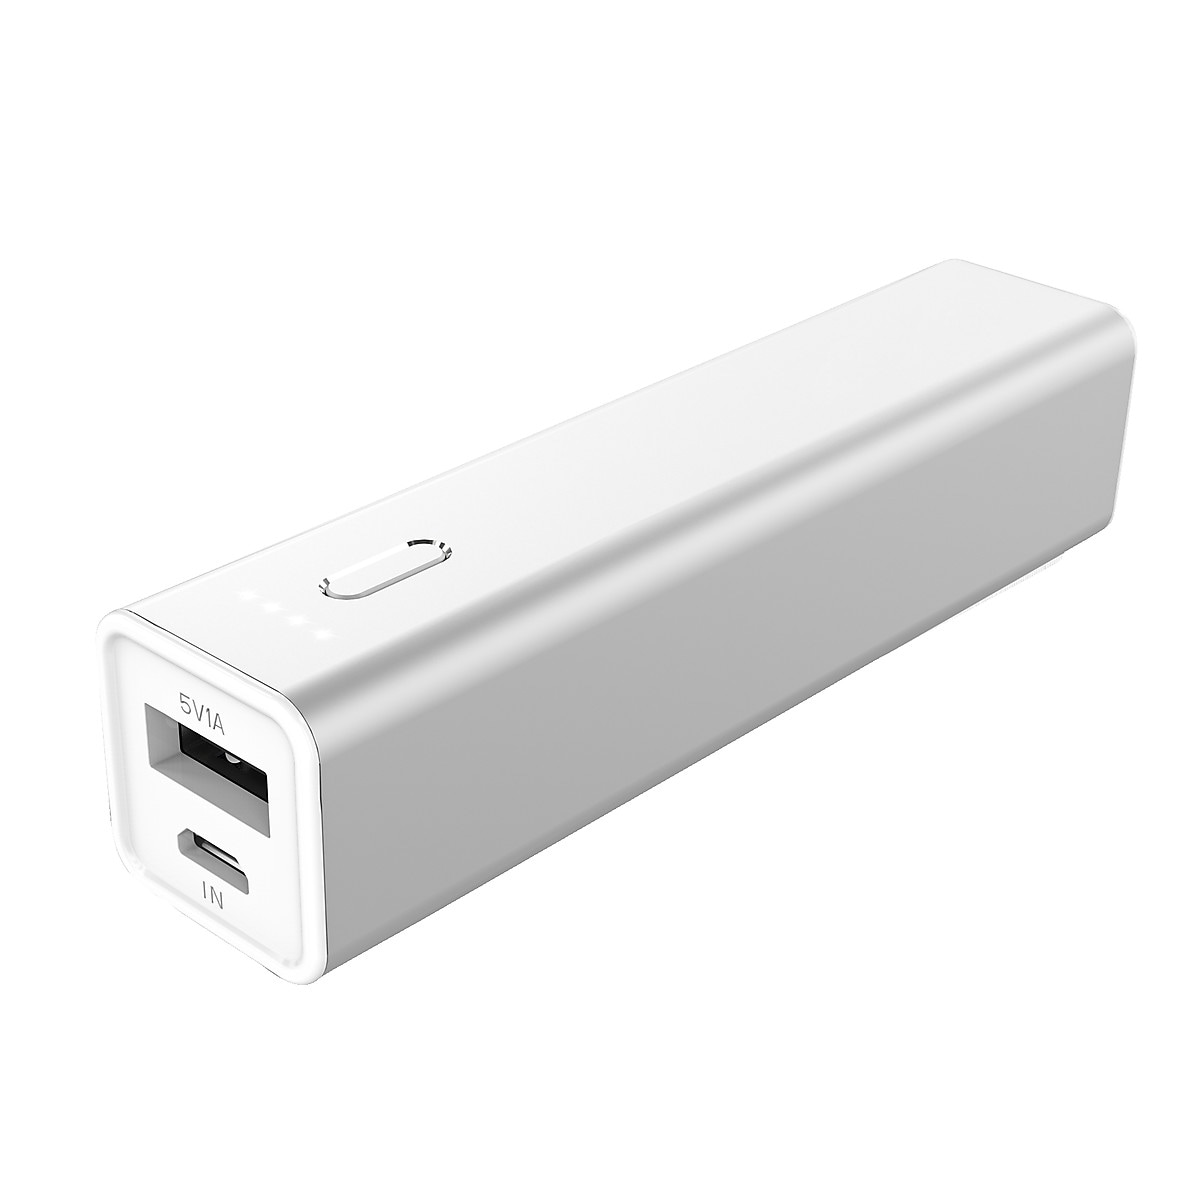 Clas Ohlson 3350 mAh Power bank